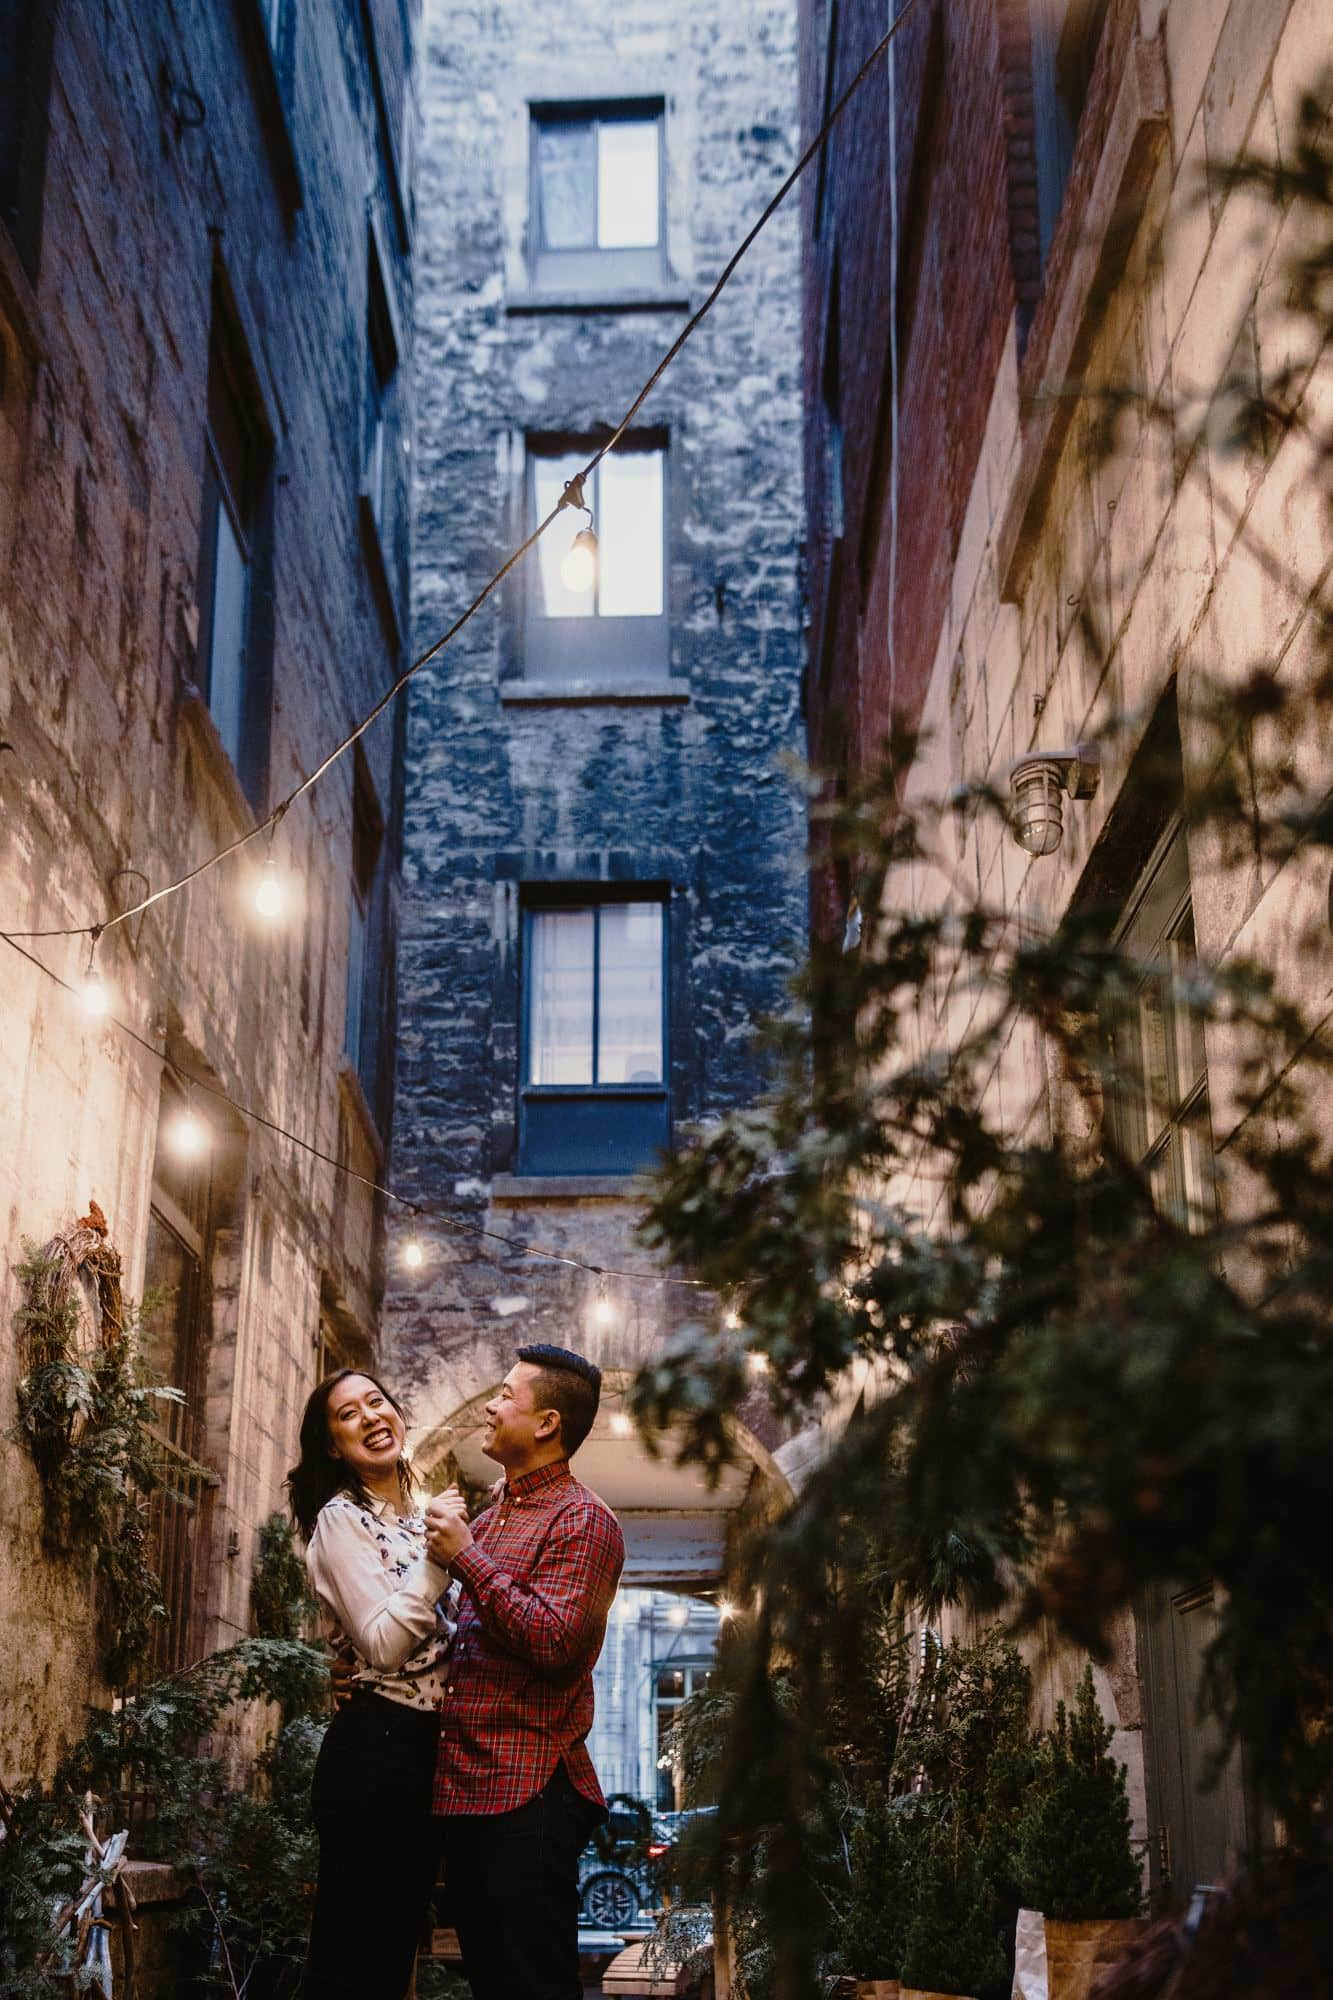 Wedding Photographer Old Montreal Vieux Montreal Port Alley Christmas Market